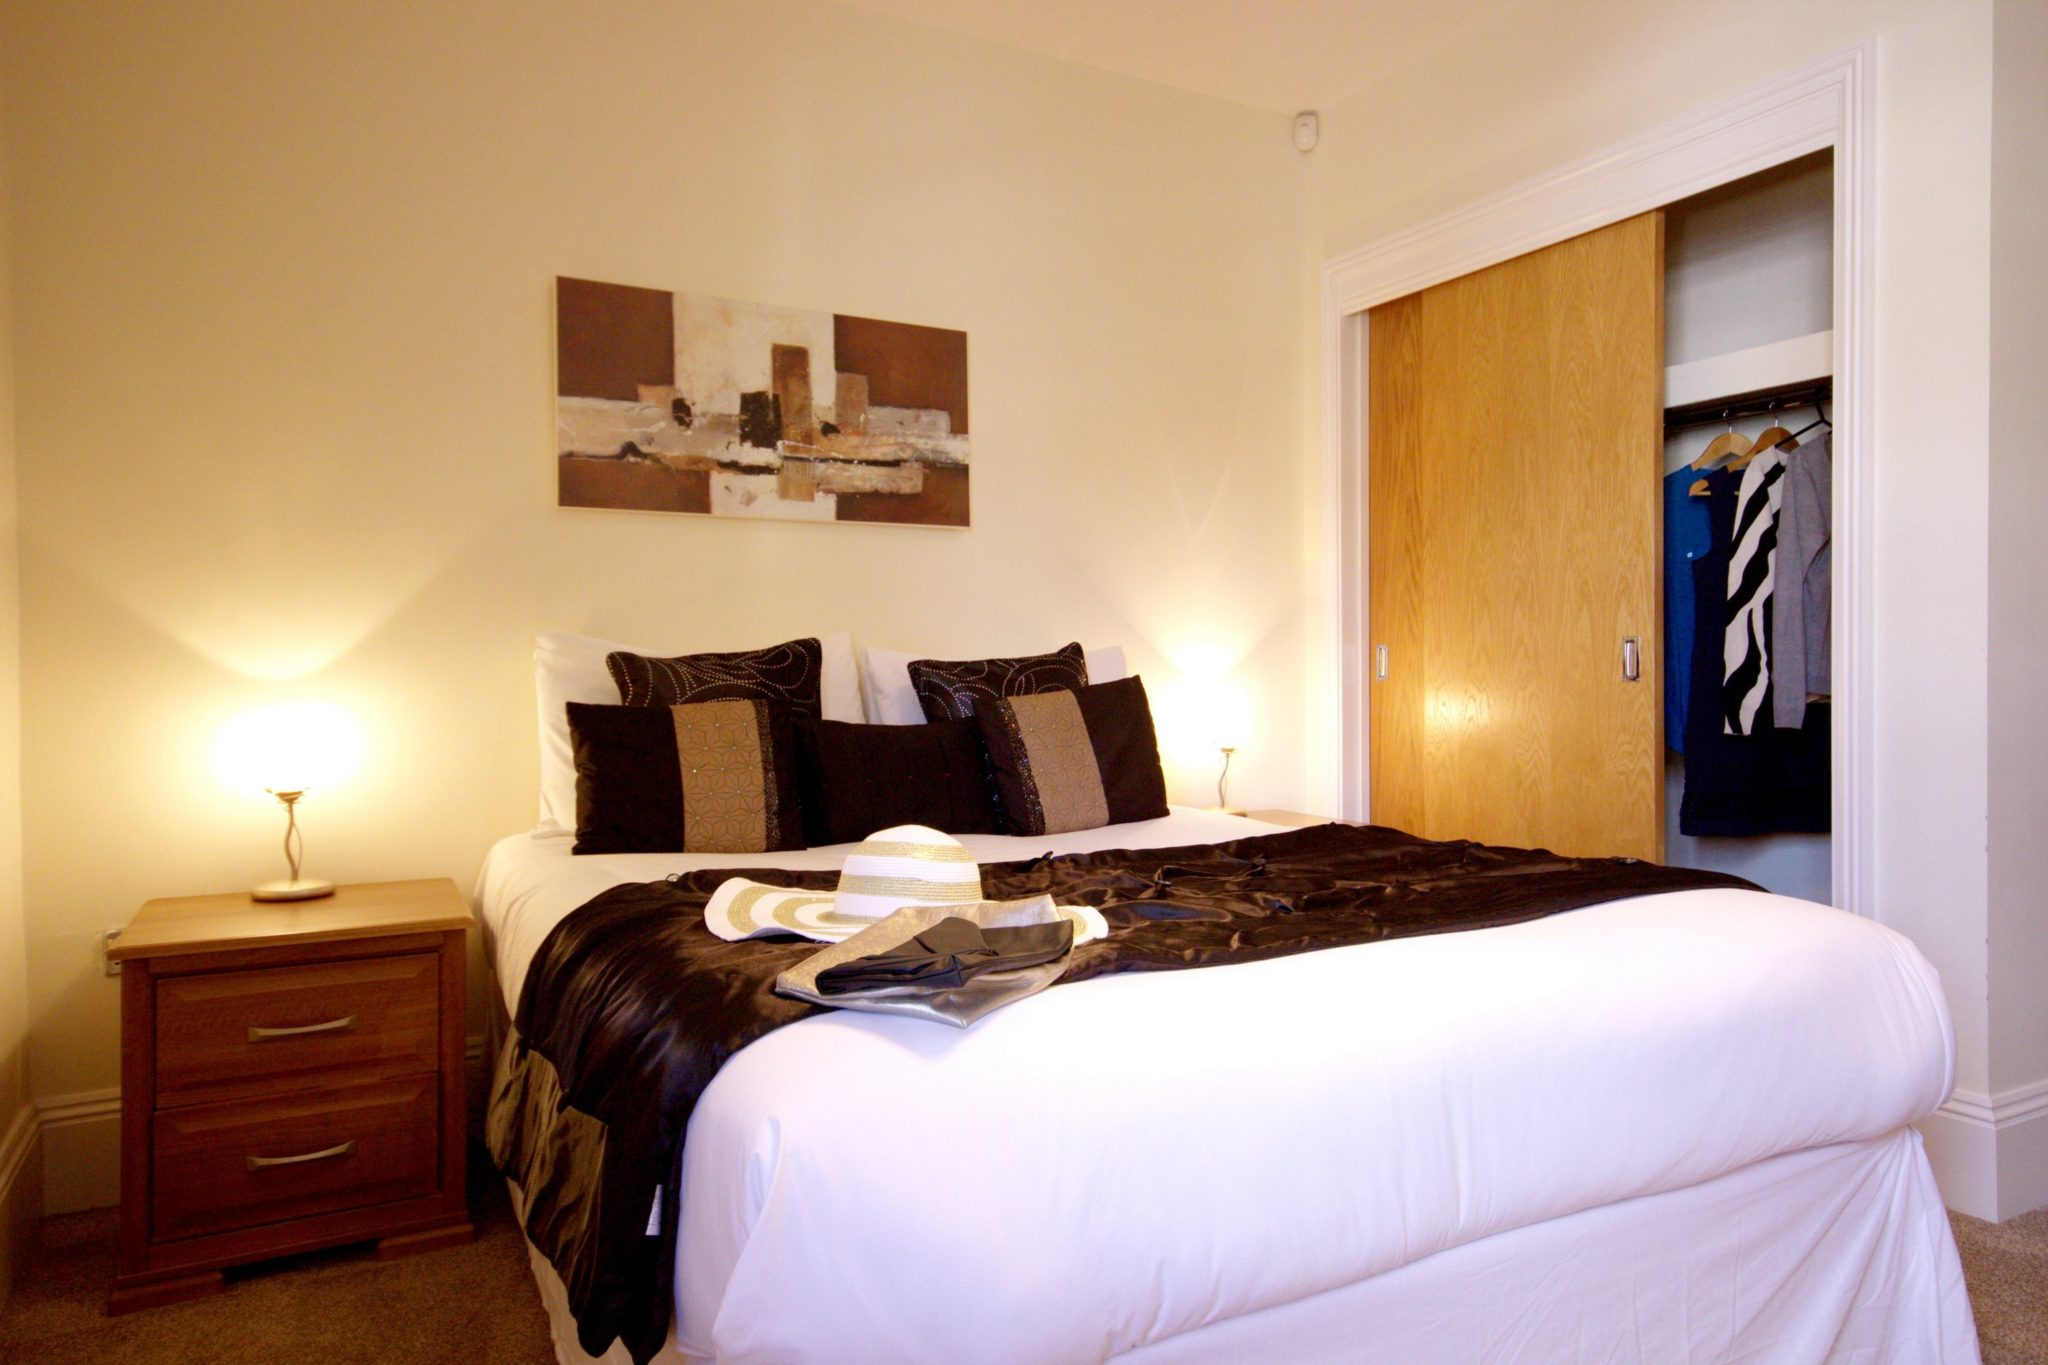 Serviced-Aparthotel-Reading,-Berkshire-available-NOW!-Book-Luxury-Corporate-Apartments-in-Reading-today!-Free-Wifi,-On-site-parking-and-weekly-housekeeping